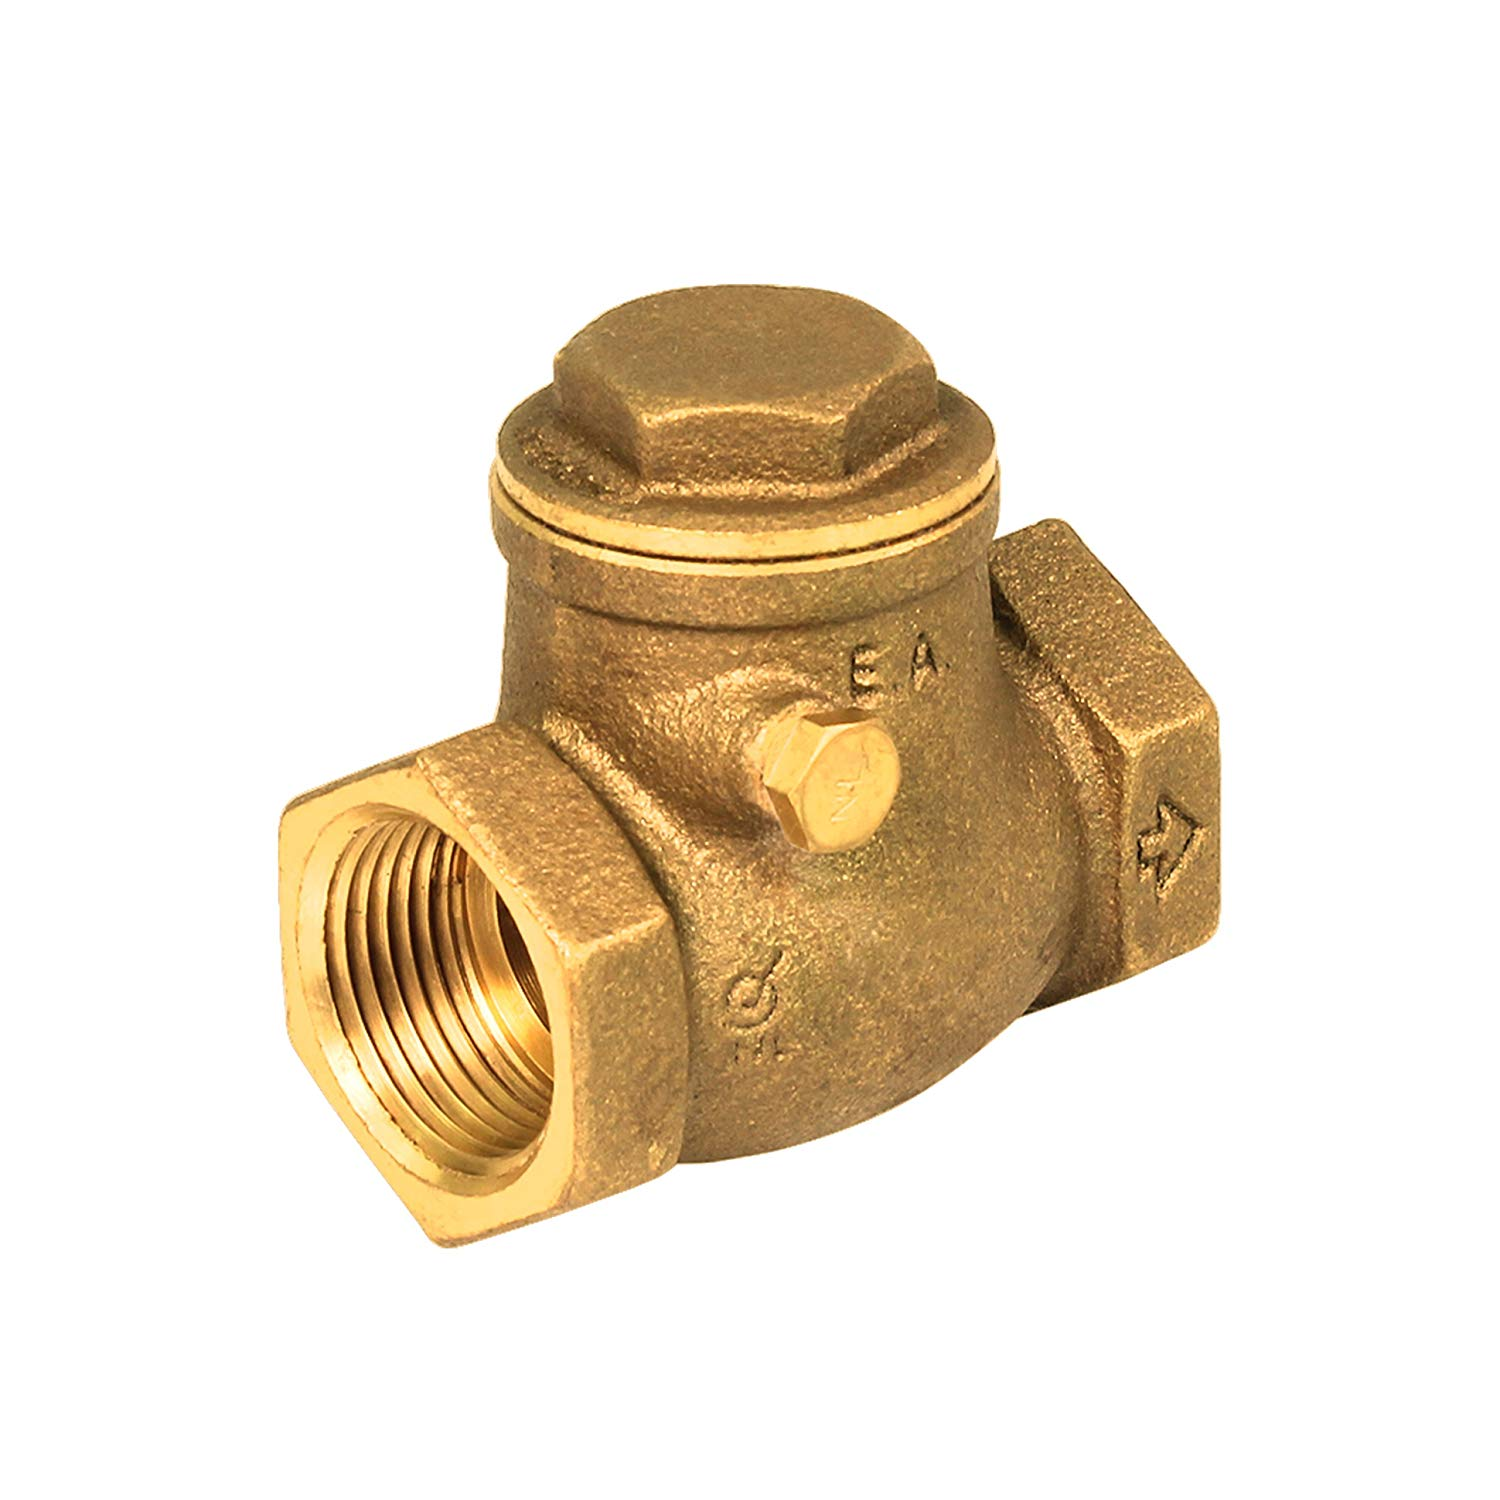 Everflow 210T034-NL 3/4-Inch Lead Free Brass Swing Check Valve with Female NPT Threaded